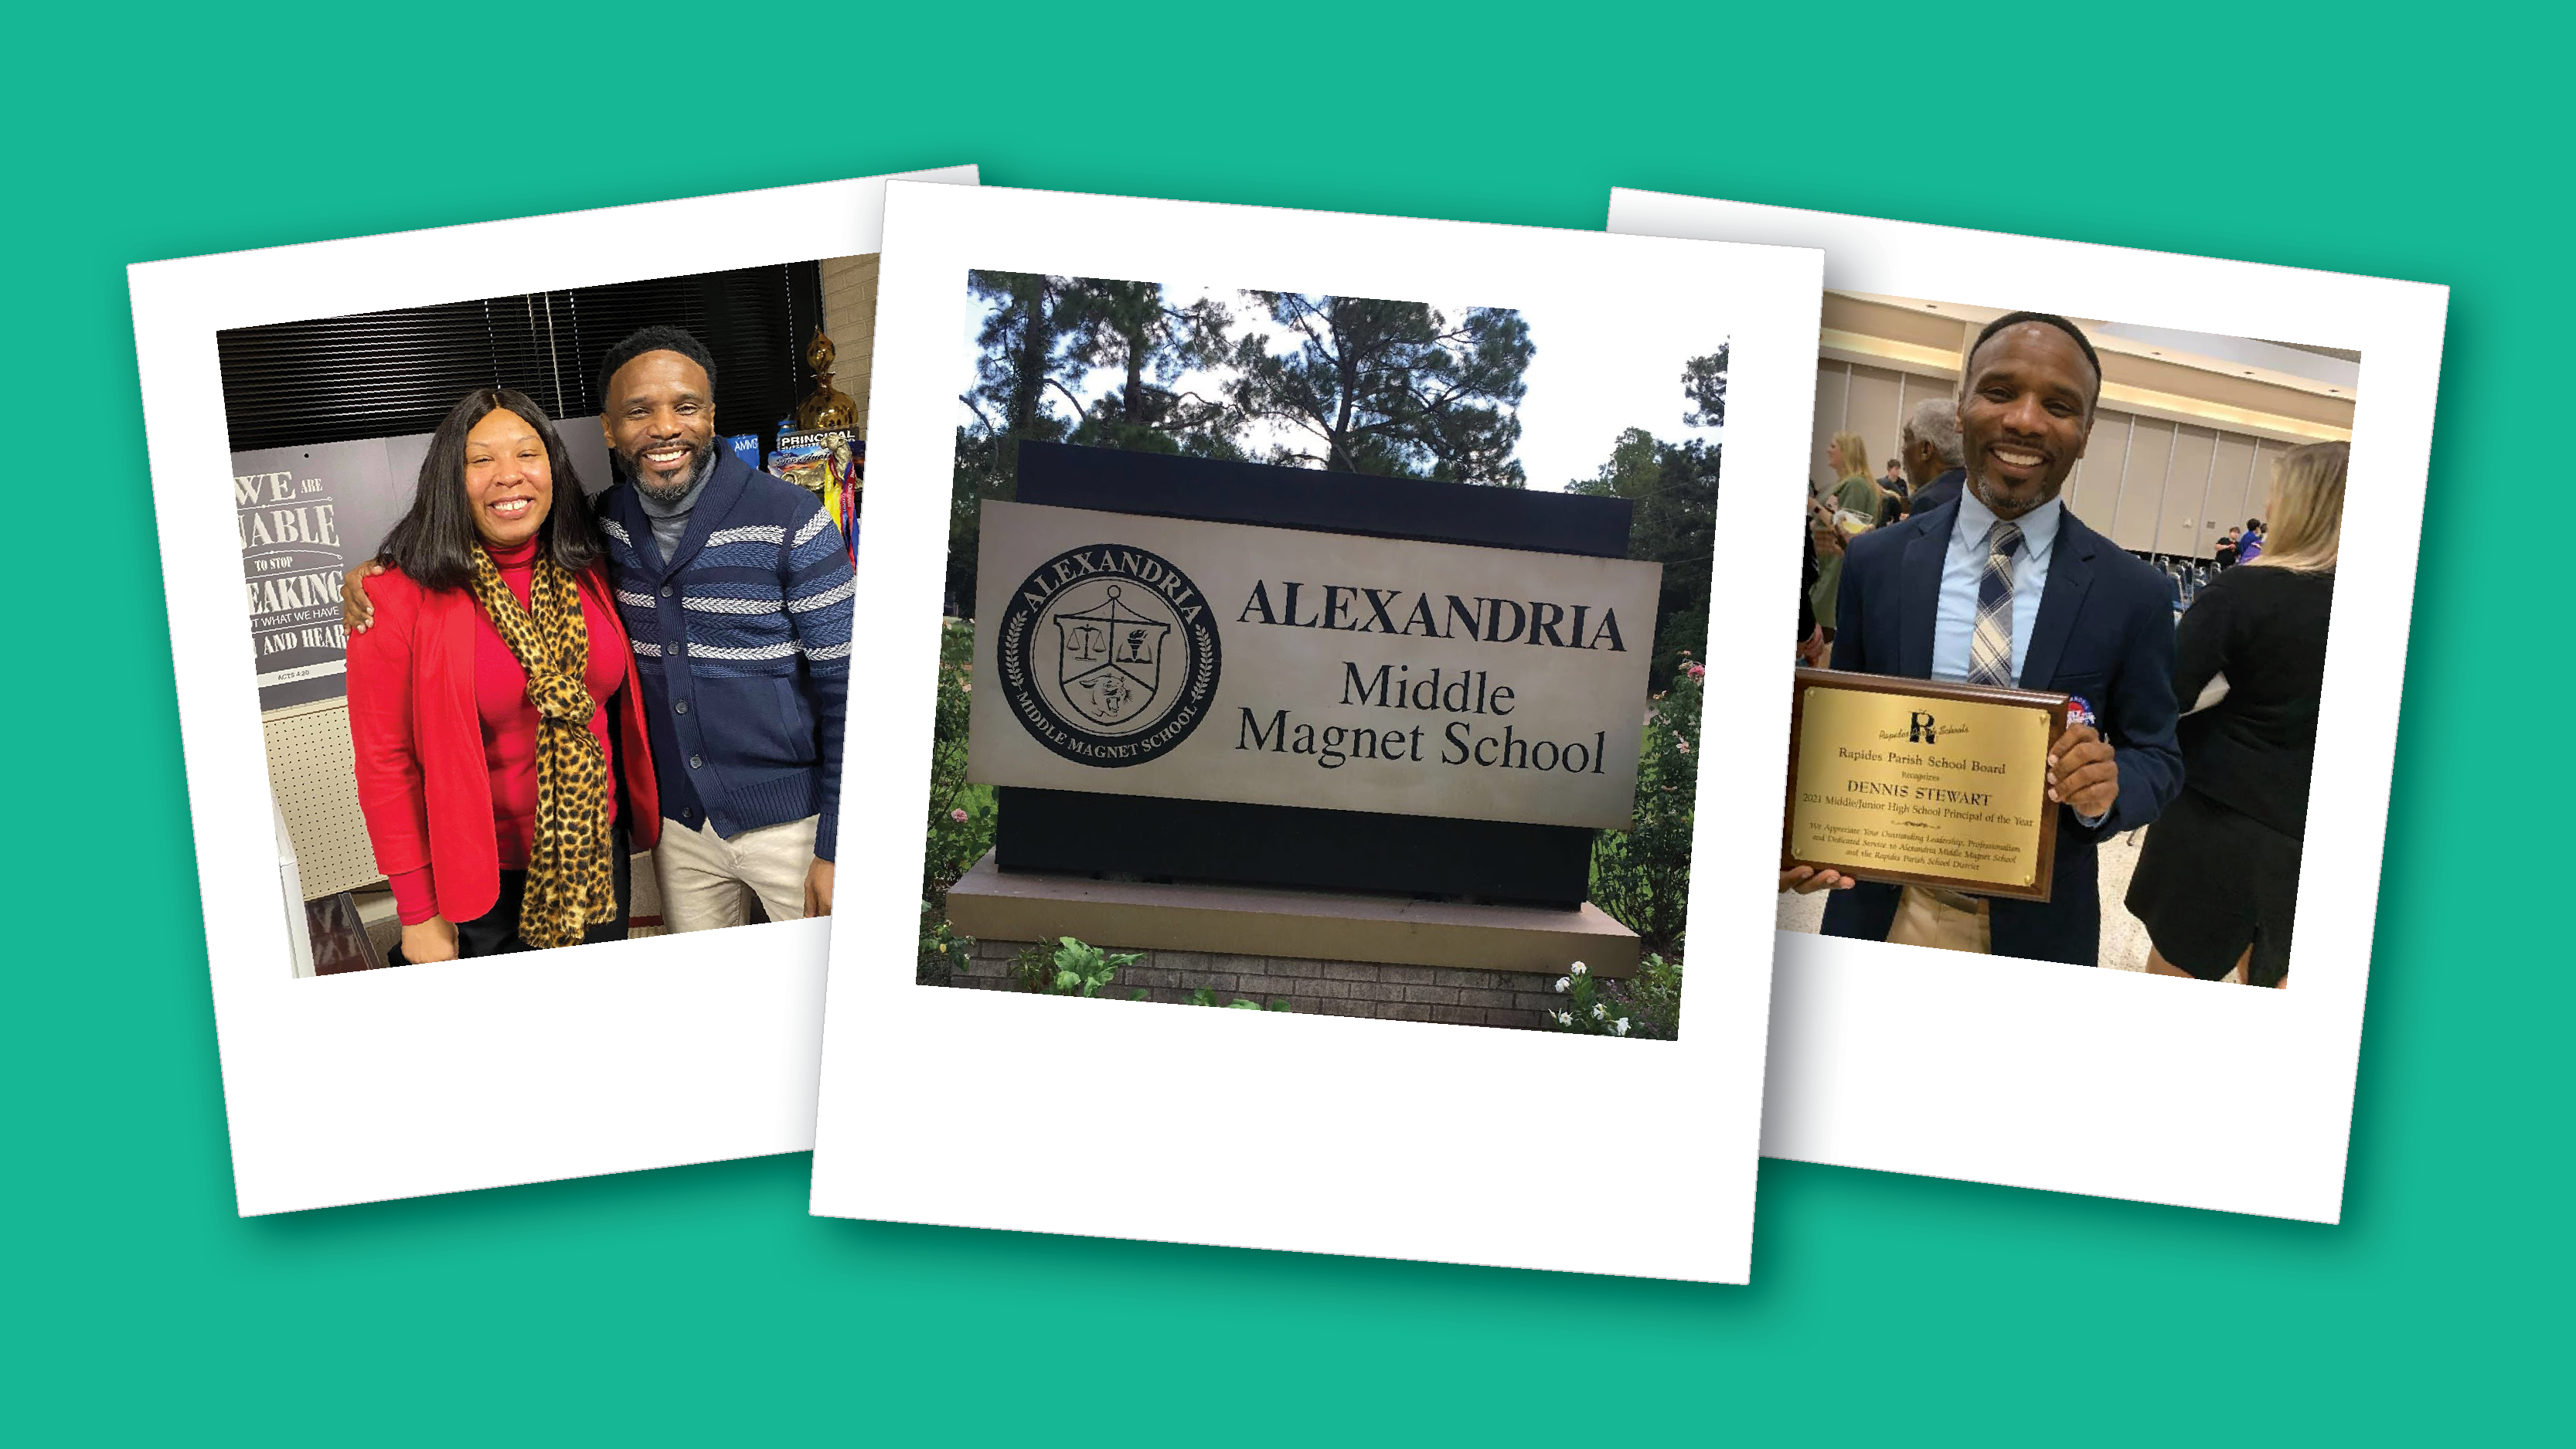 Against All Odds: Alexandria Middle Magnet School's Success Story